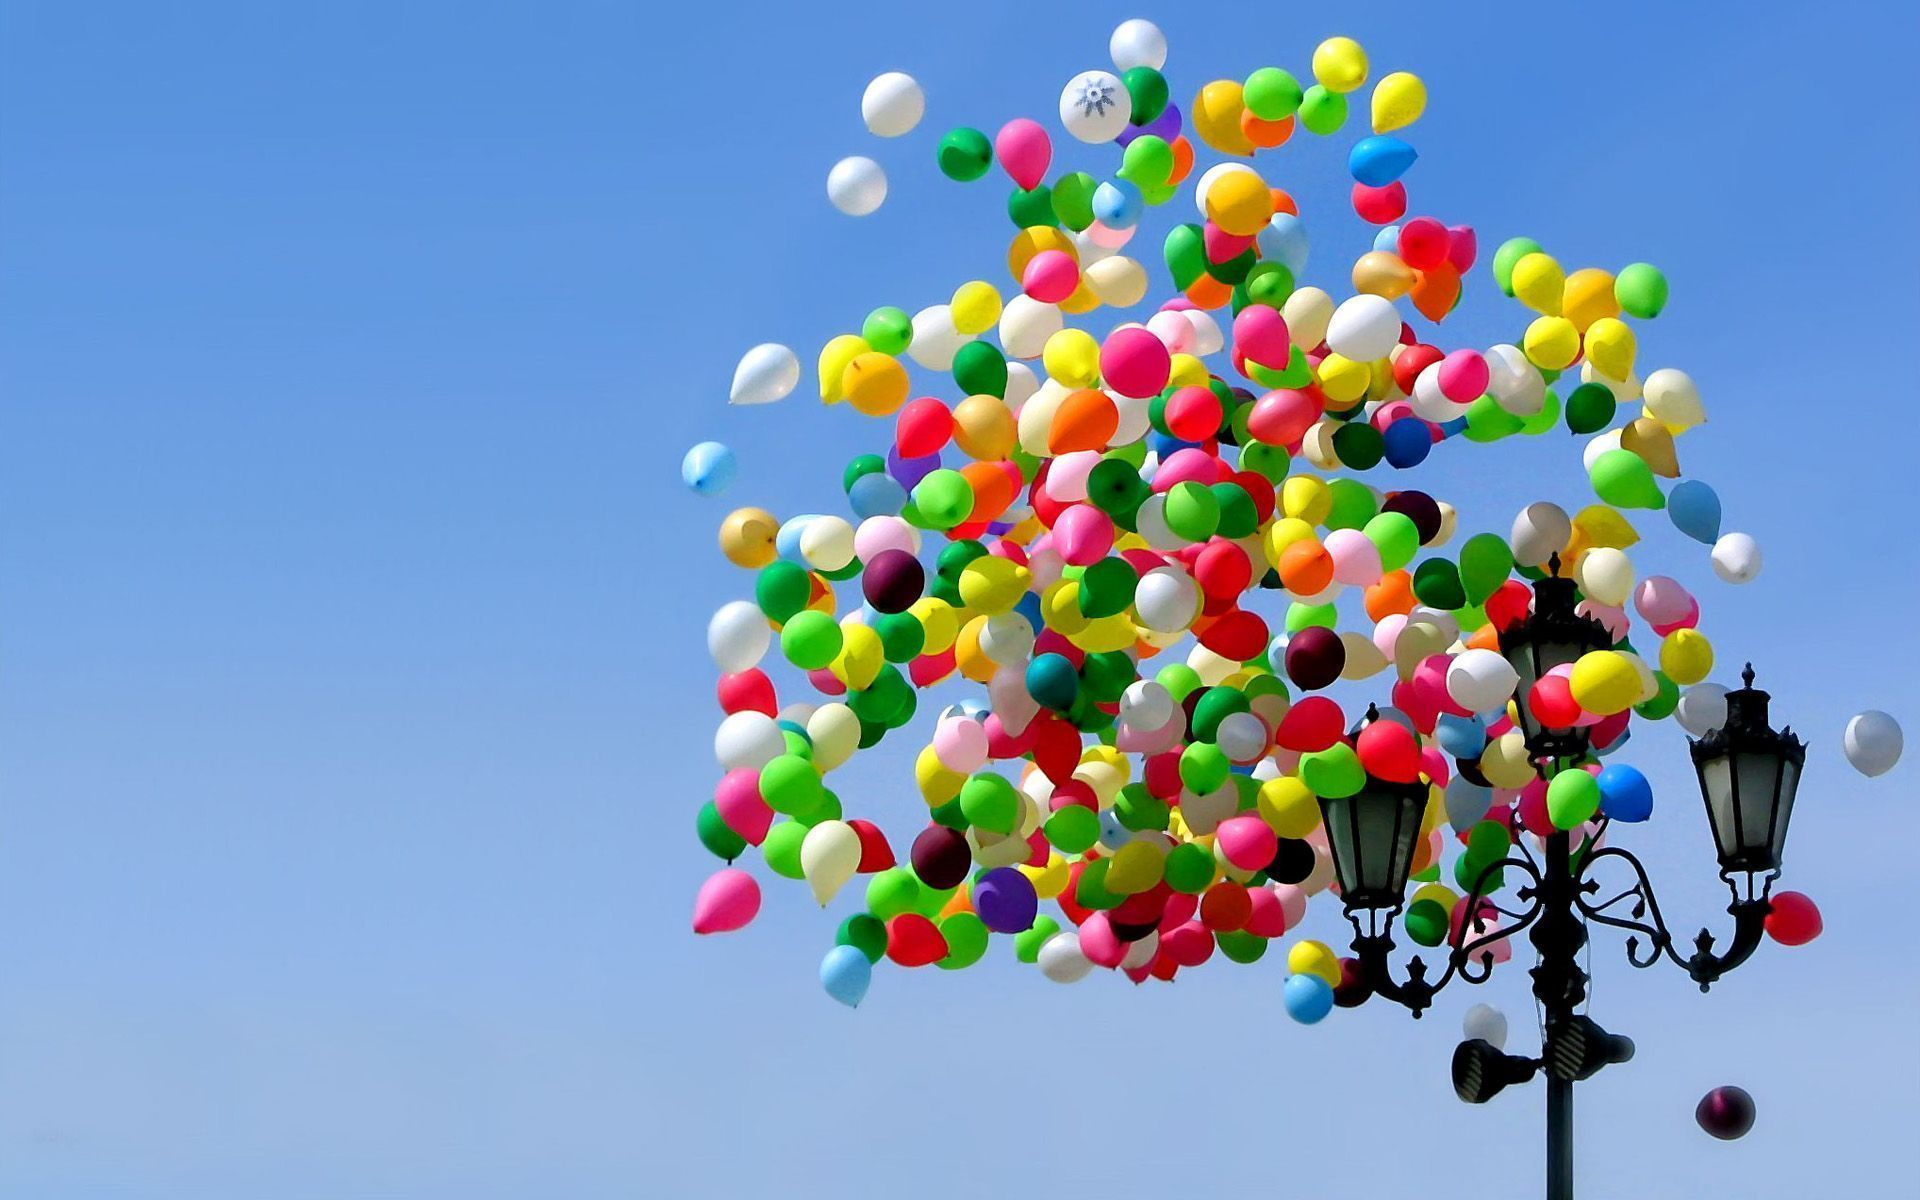 balloons photographs